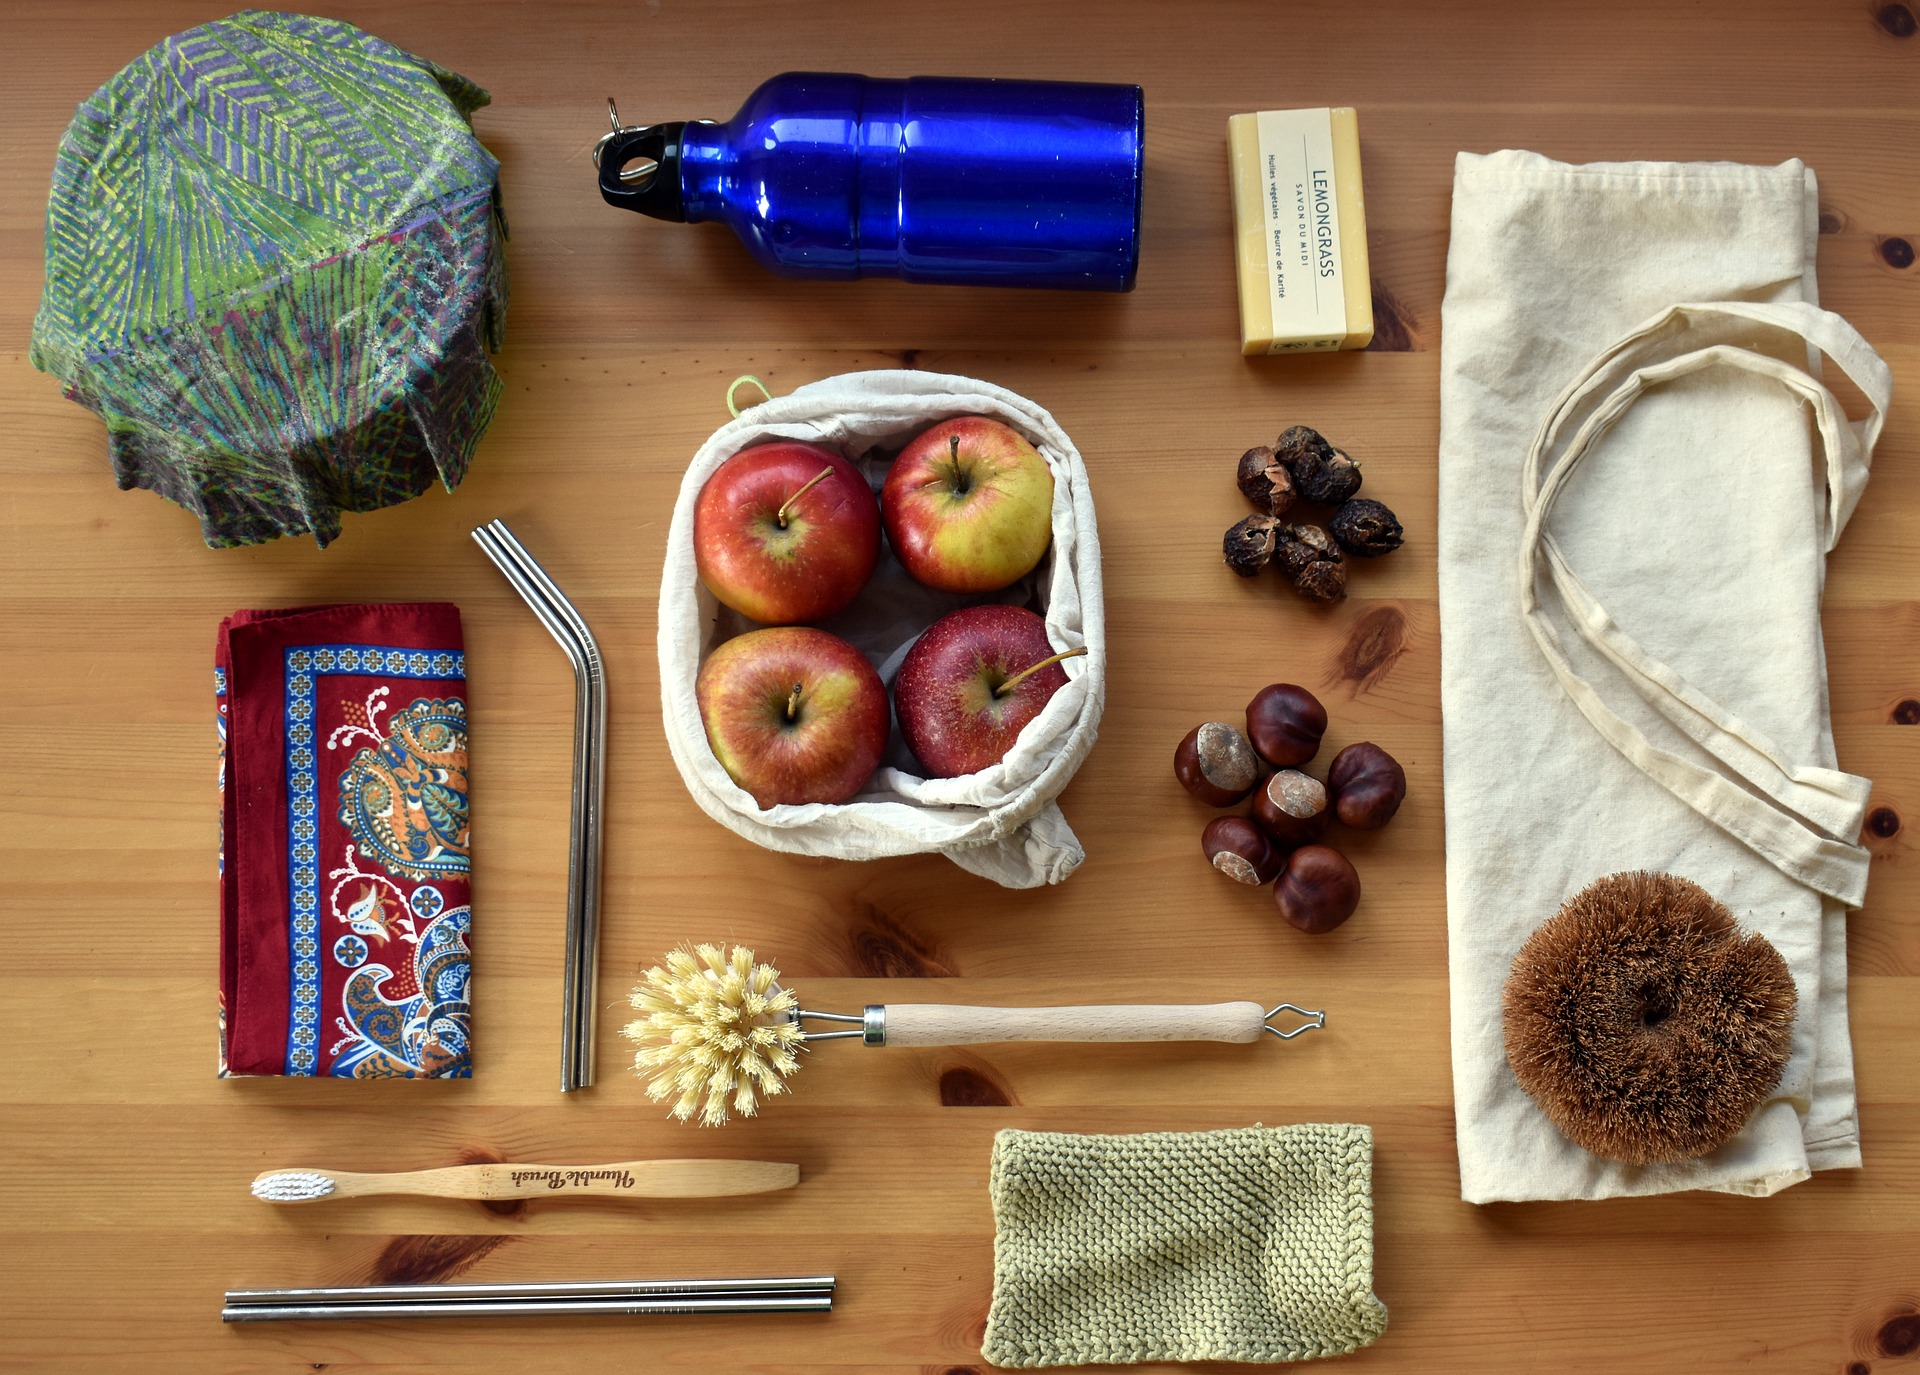 Image: reusable items to help a person live a more zero waste lifestyle